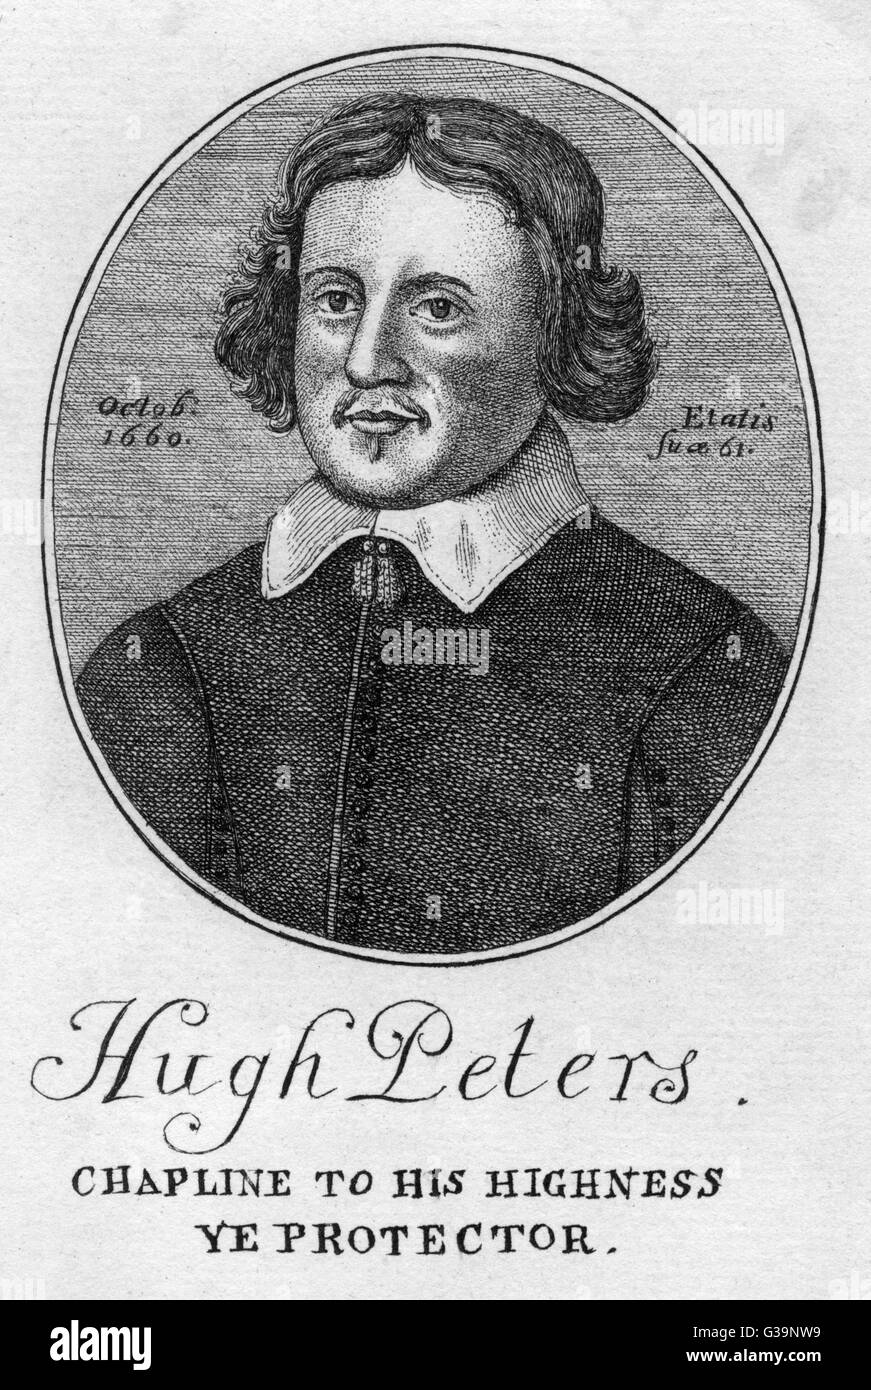 HUGH PETERS  chaplain to Oliver Cromwell,  beheaded as a regicide at the  Restoration      Date: 1598 - 1660 - Stock Image